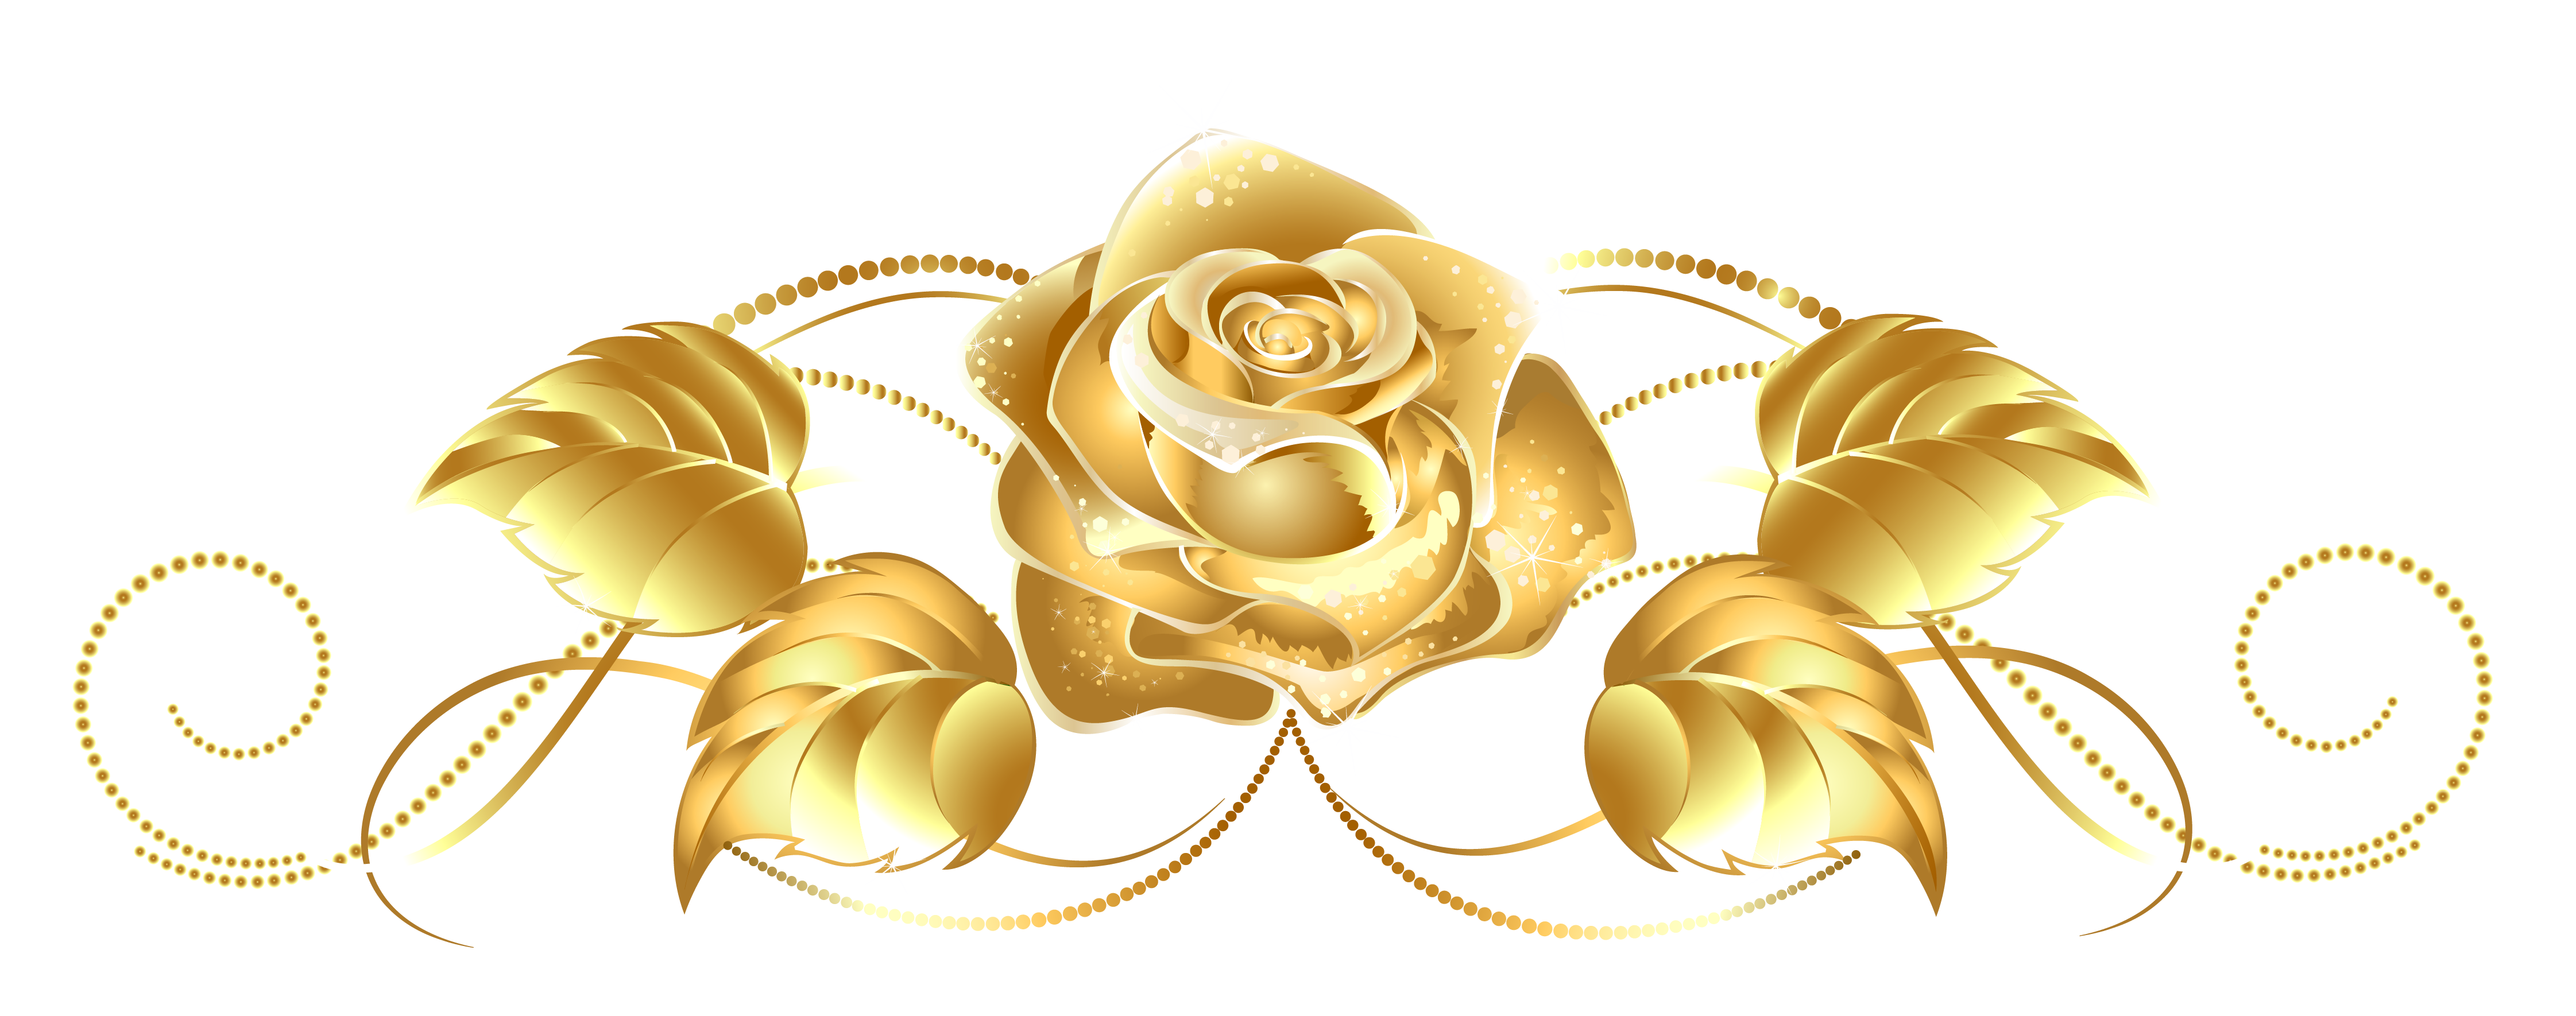 Gold PNG - 23975